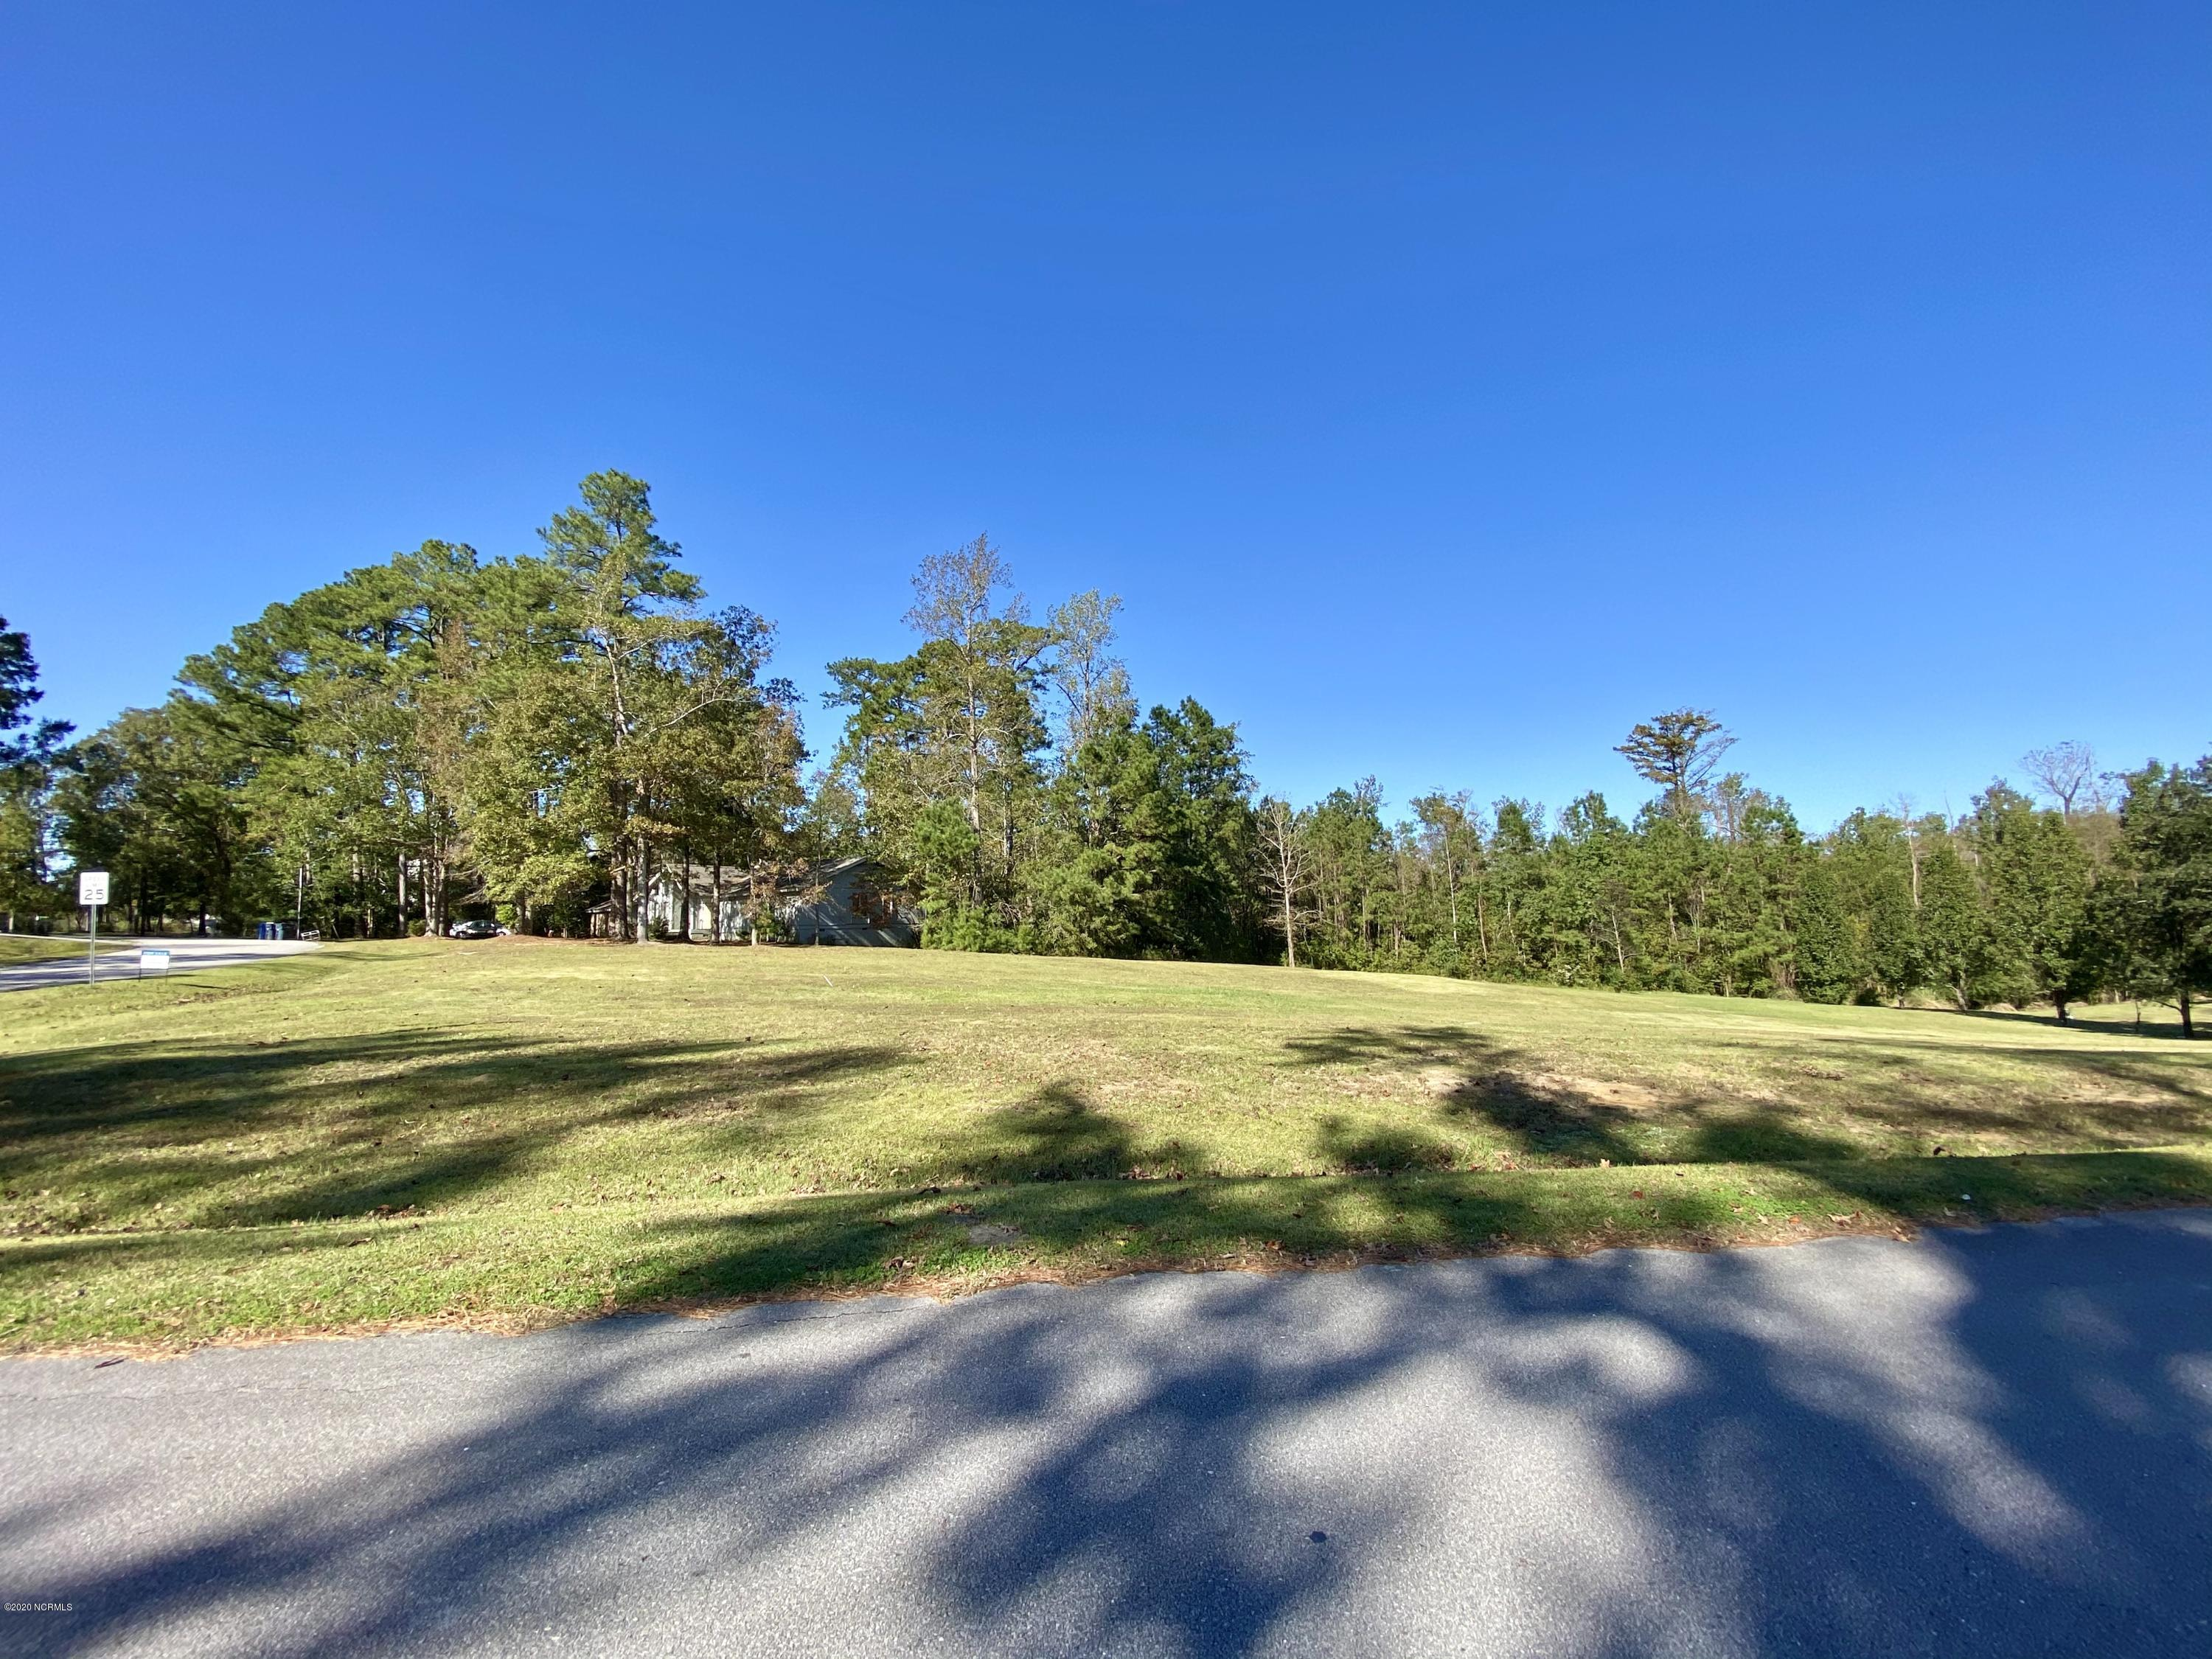 Price reduced!! Build your custom dream home on this cleared 1.18 acre lot in Country Club! This gorgeous piece of property is situated on the corner of Country Club Drive and Greenway Road. It can be divided into 2 separate lots if desired. Call for more info!